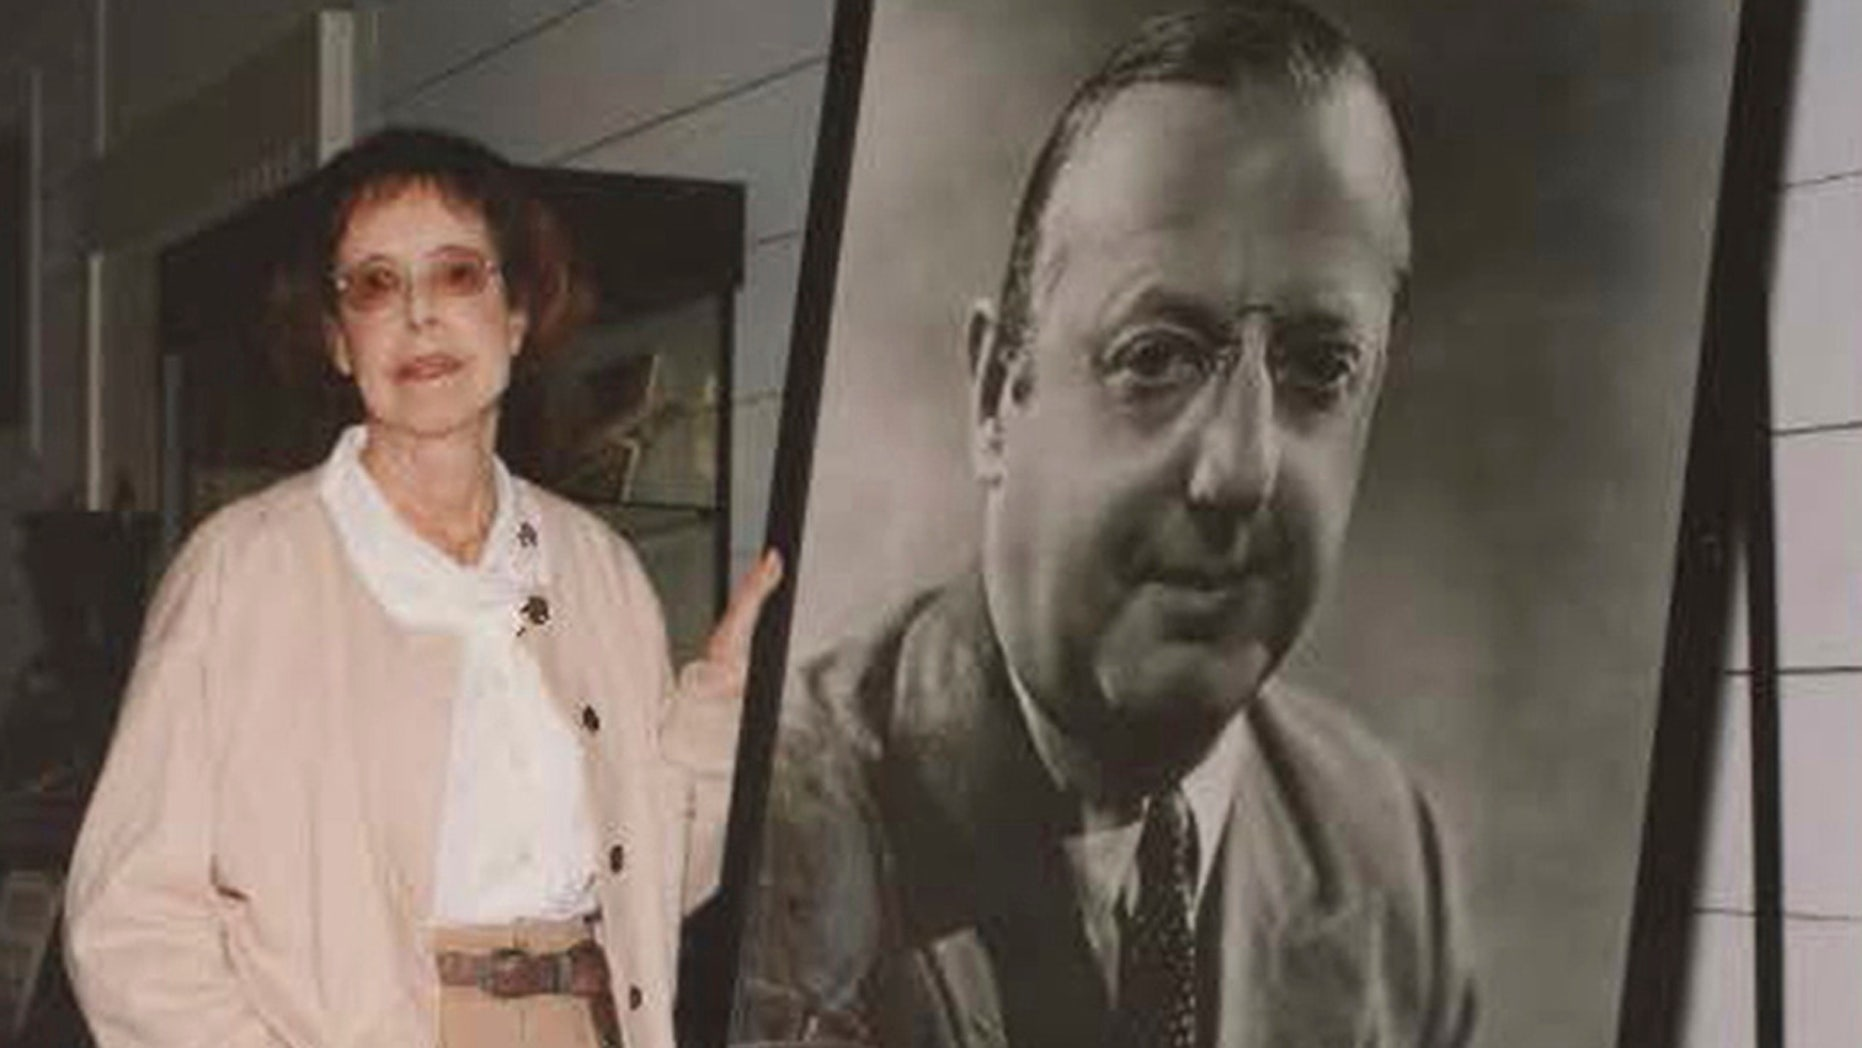 In this 2002 photo provided by Bart Bragg, author and film historian, Betty Lasky, poses with a portrait of her father, Jesse L. Lasky, at the Lasky-DeMille Barn, now the Hollywood Heritage Museum, in Los Angeles.